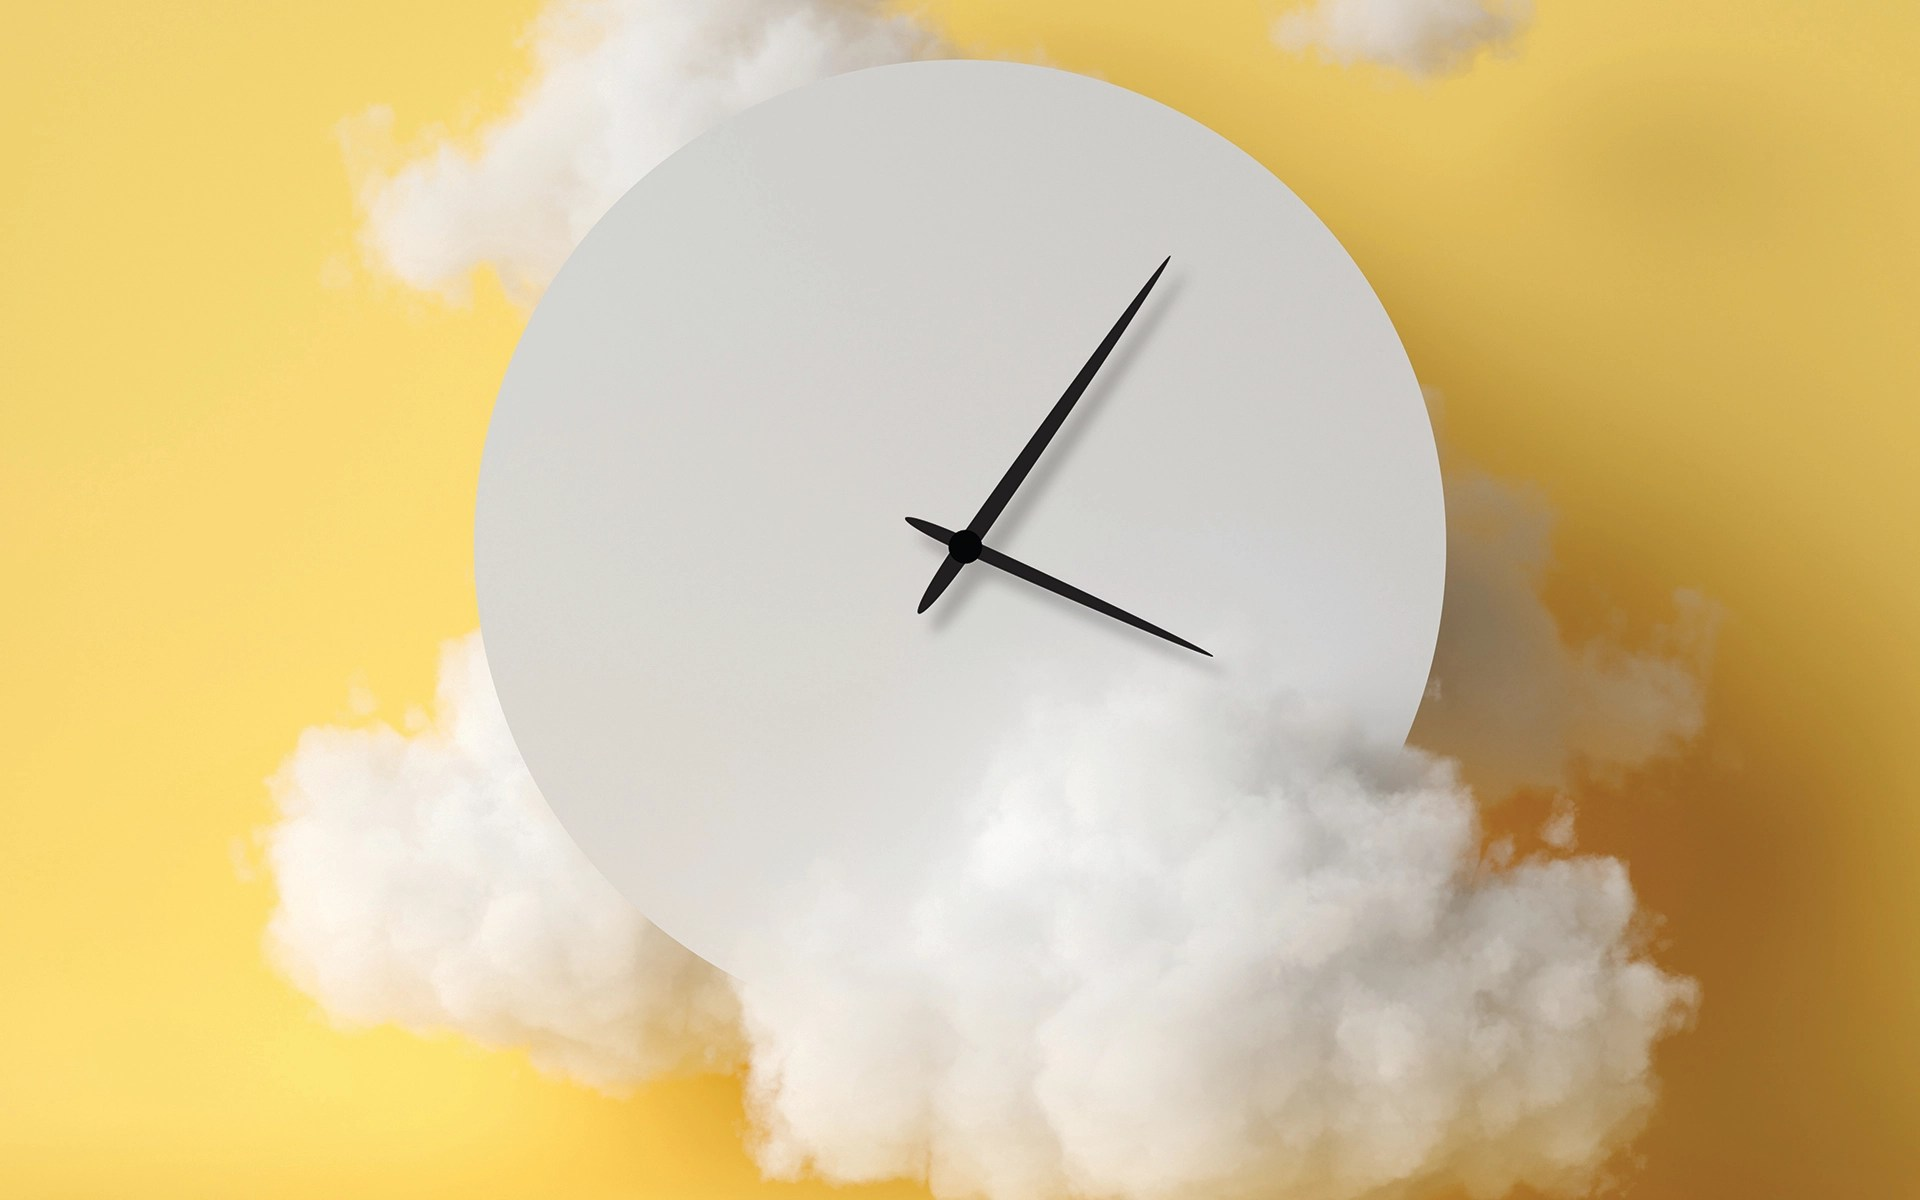 The Science of Deep Sleep - Clock amidst fluffy clouds on a yellow background